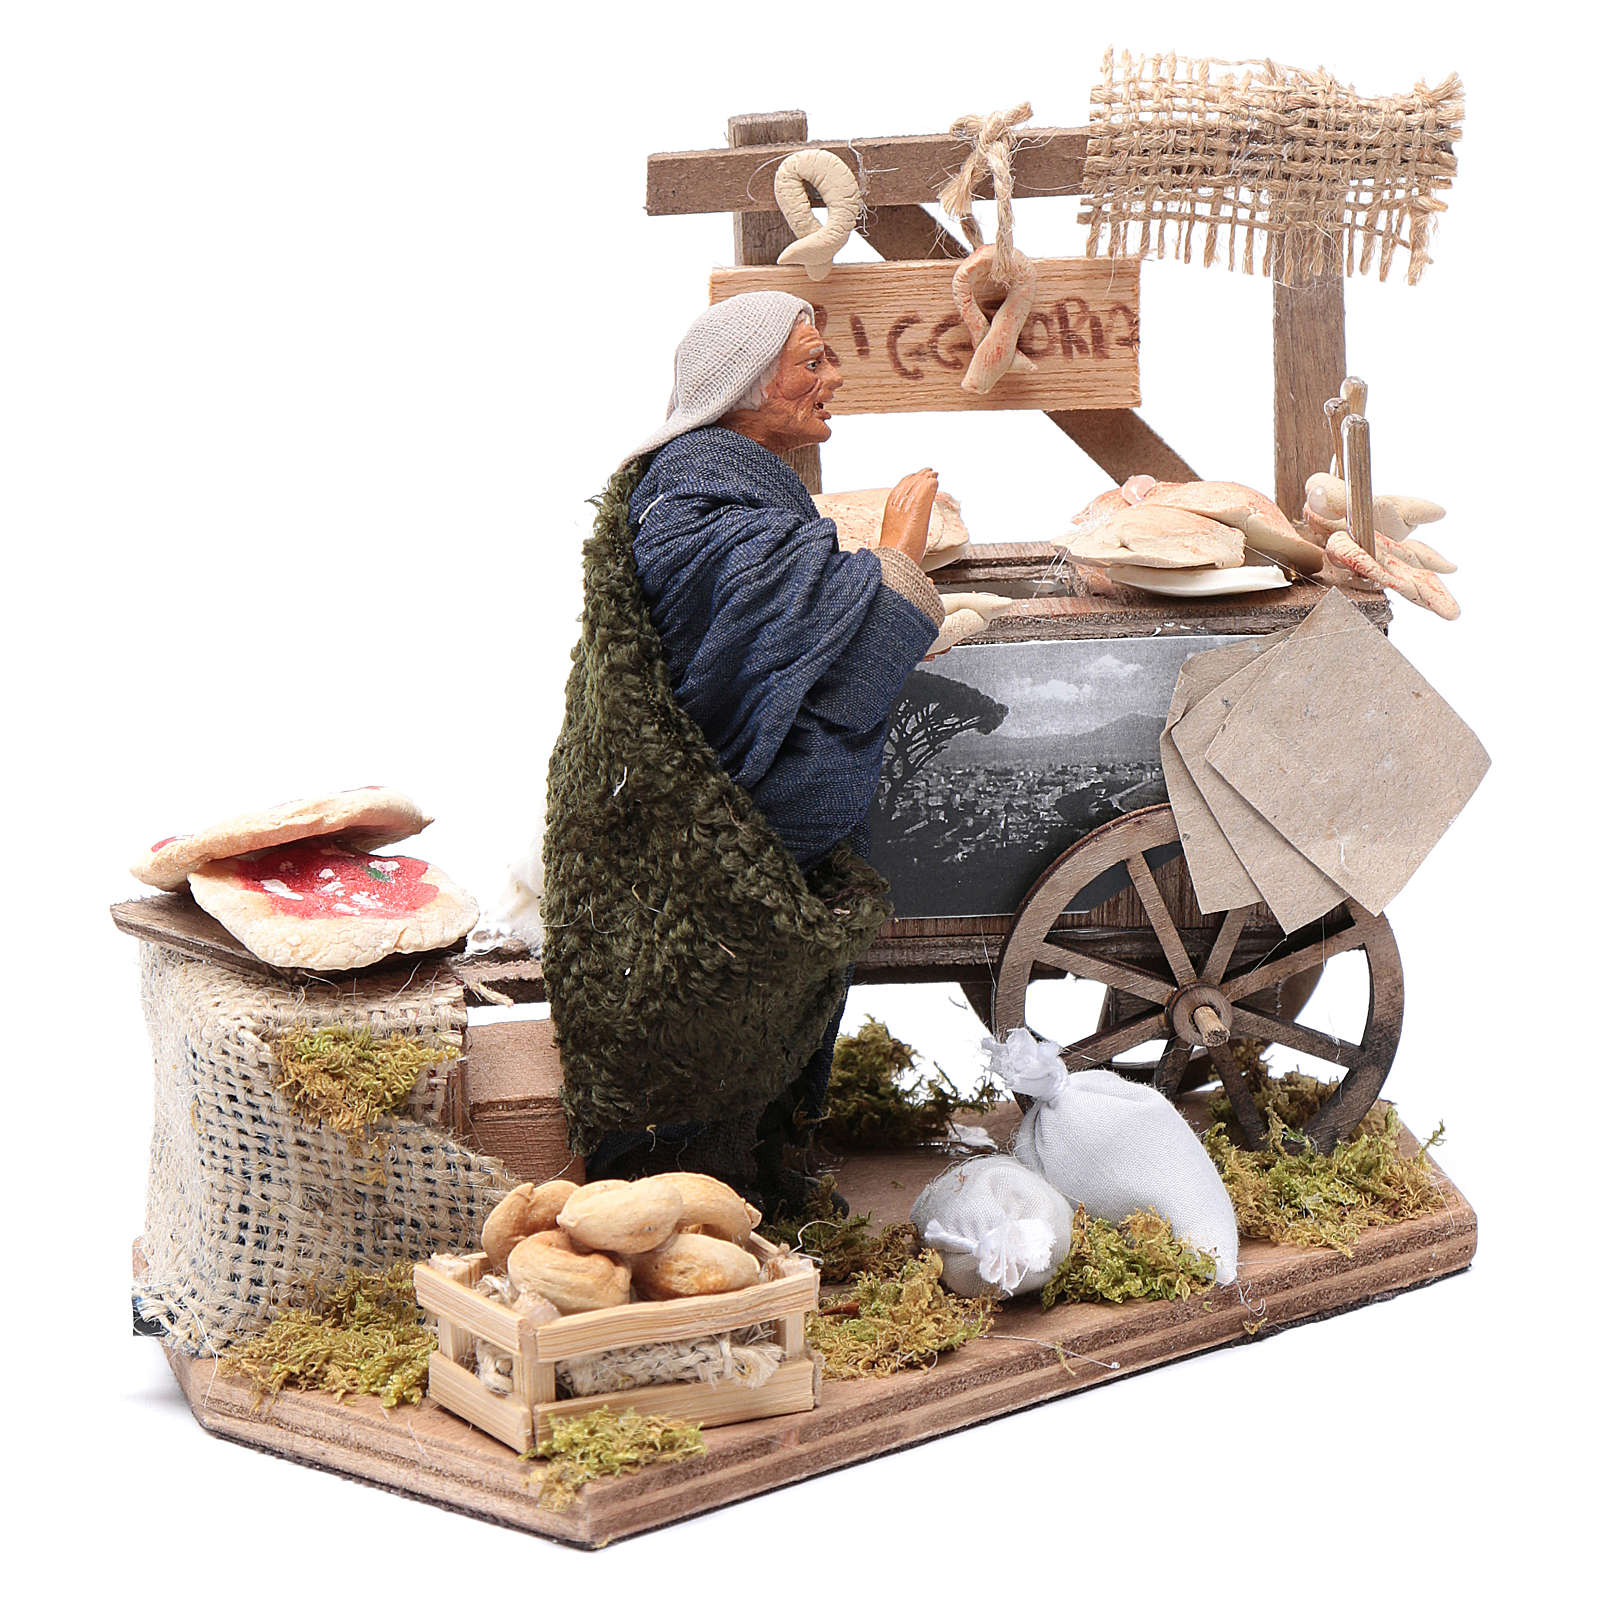 Neapolitan nativity scene statue woman with fritter cart 10 cm 4